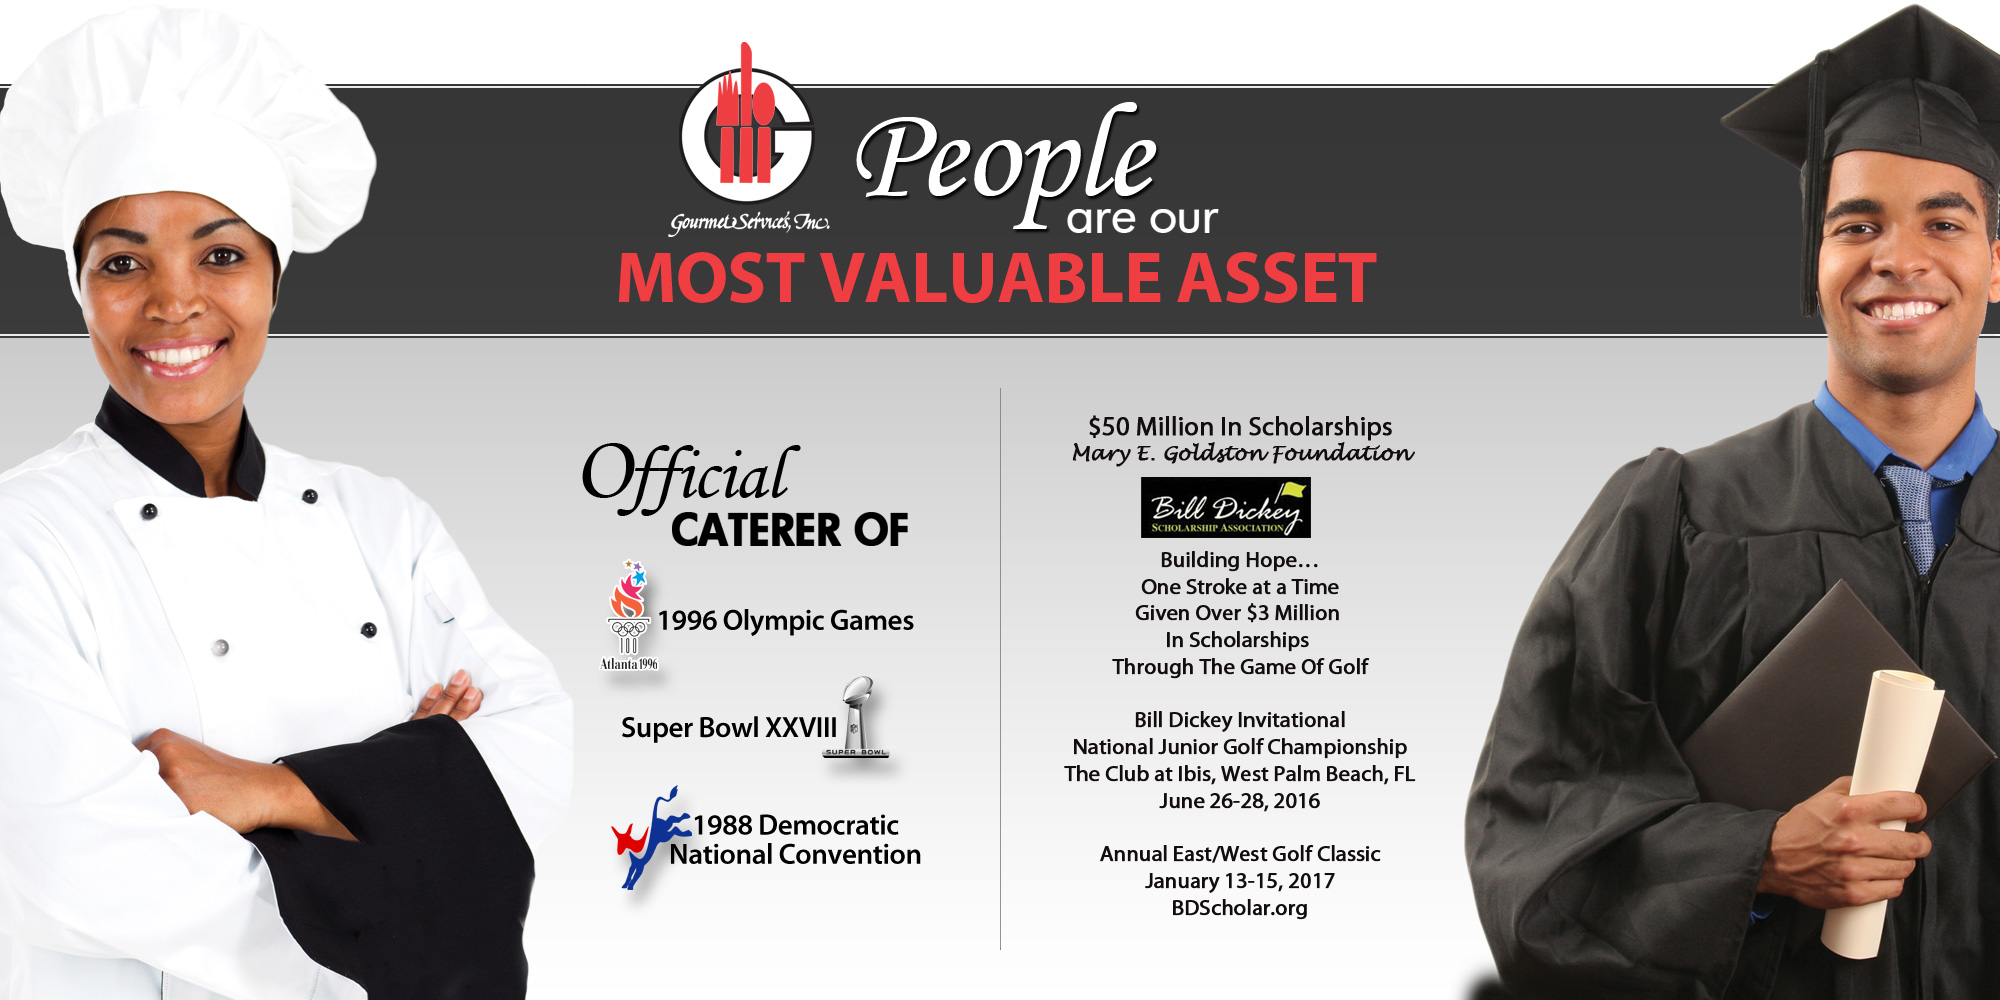 people are our most valuable asset at Gourmet Services